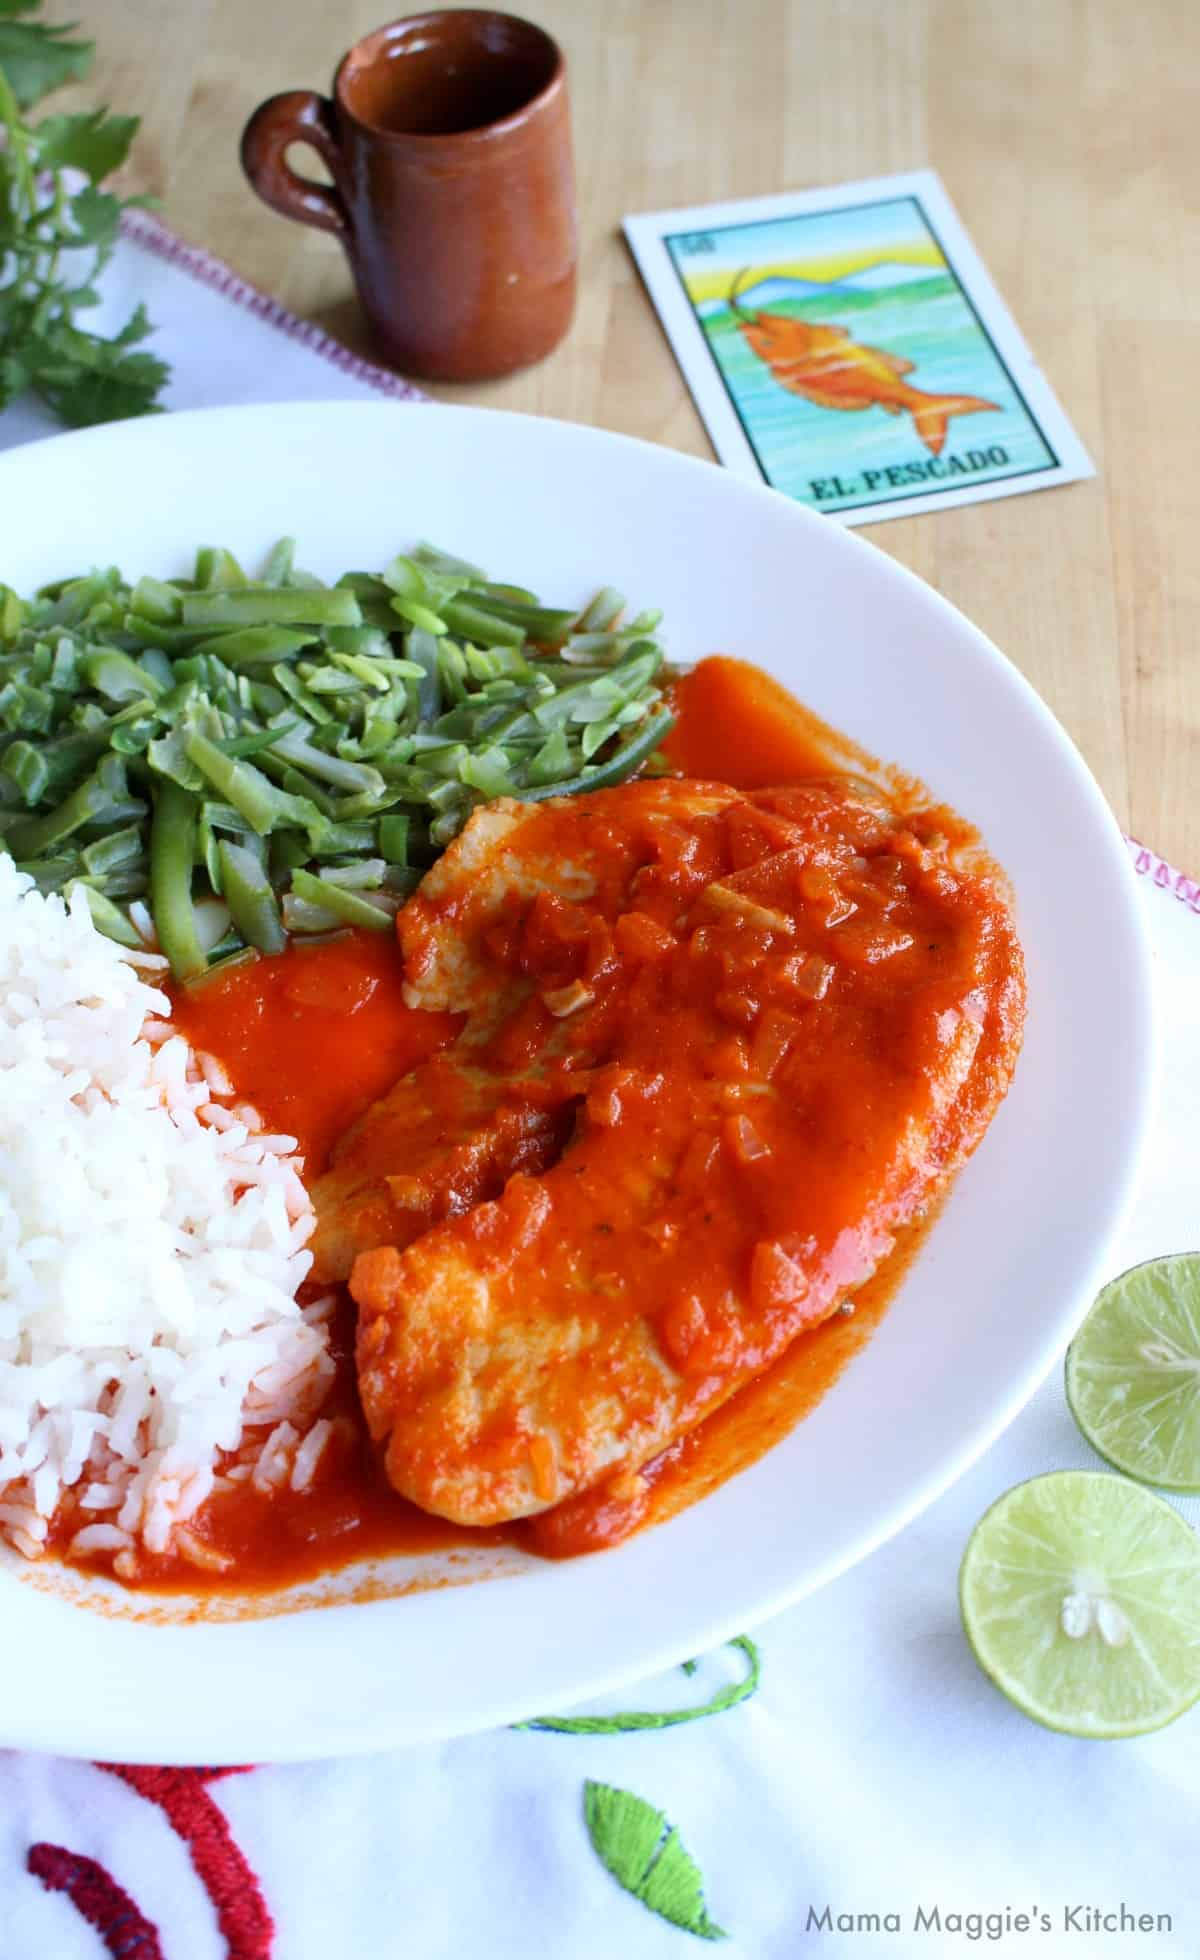 Deviled Fish served on a white plate next to white rice and green beans.